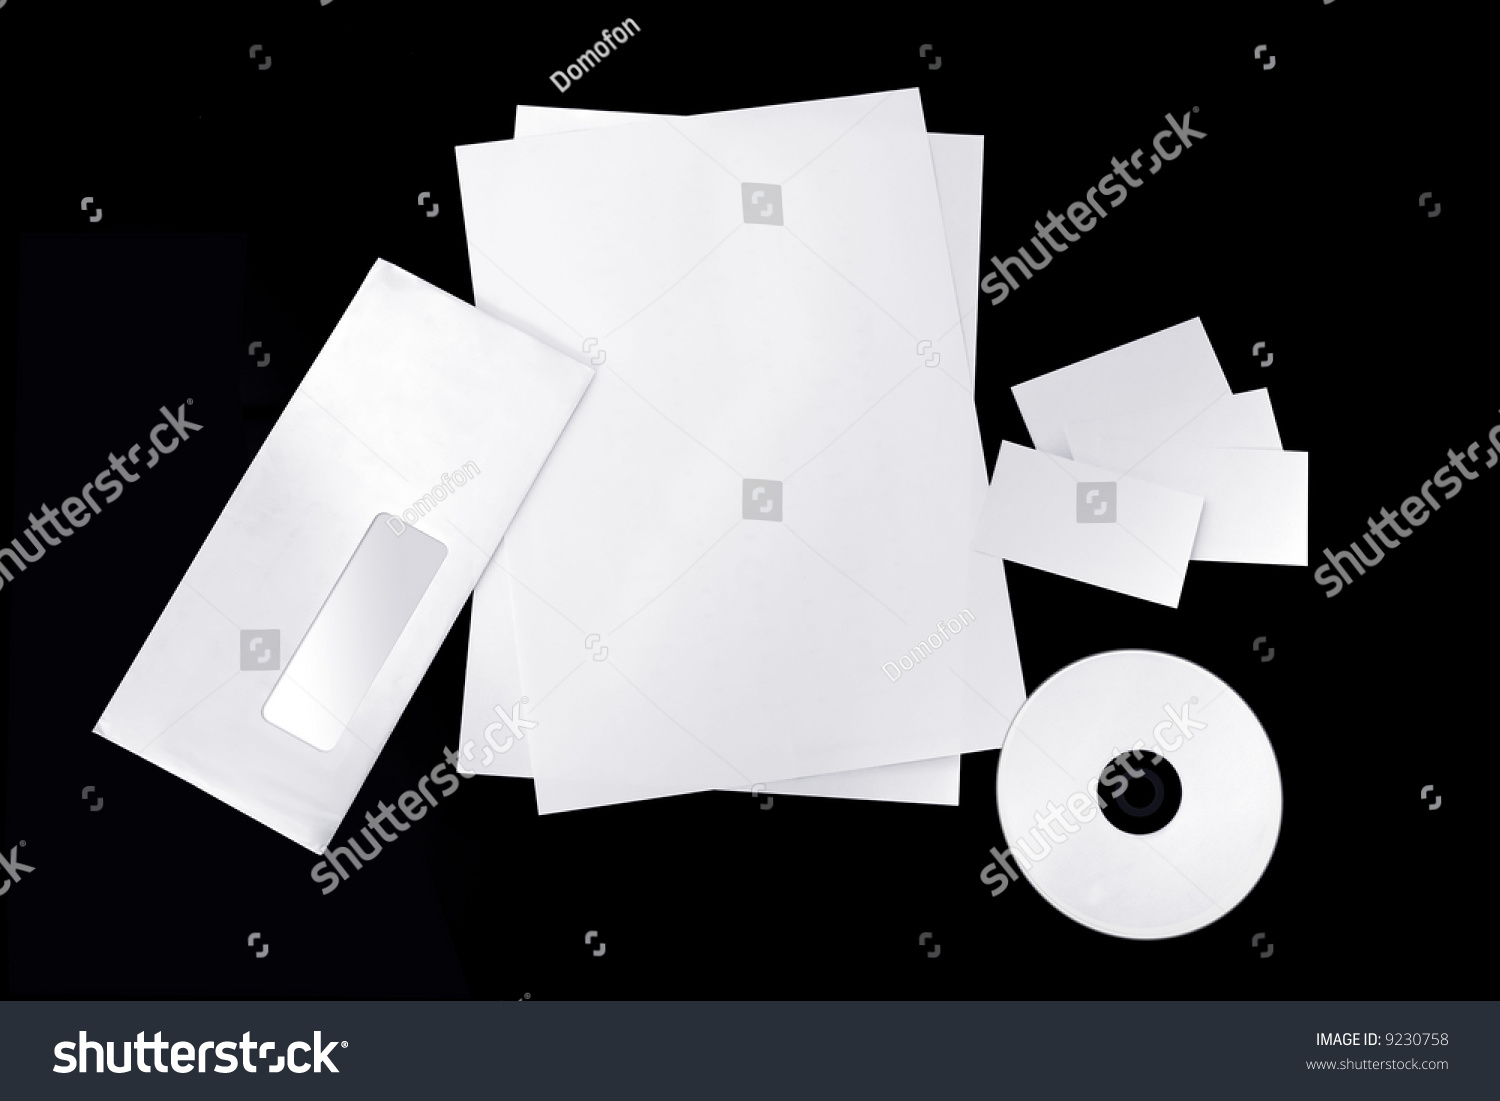 Isolated Blank Corporate Envelope Business Cards Stock Photo 9230758 ...